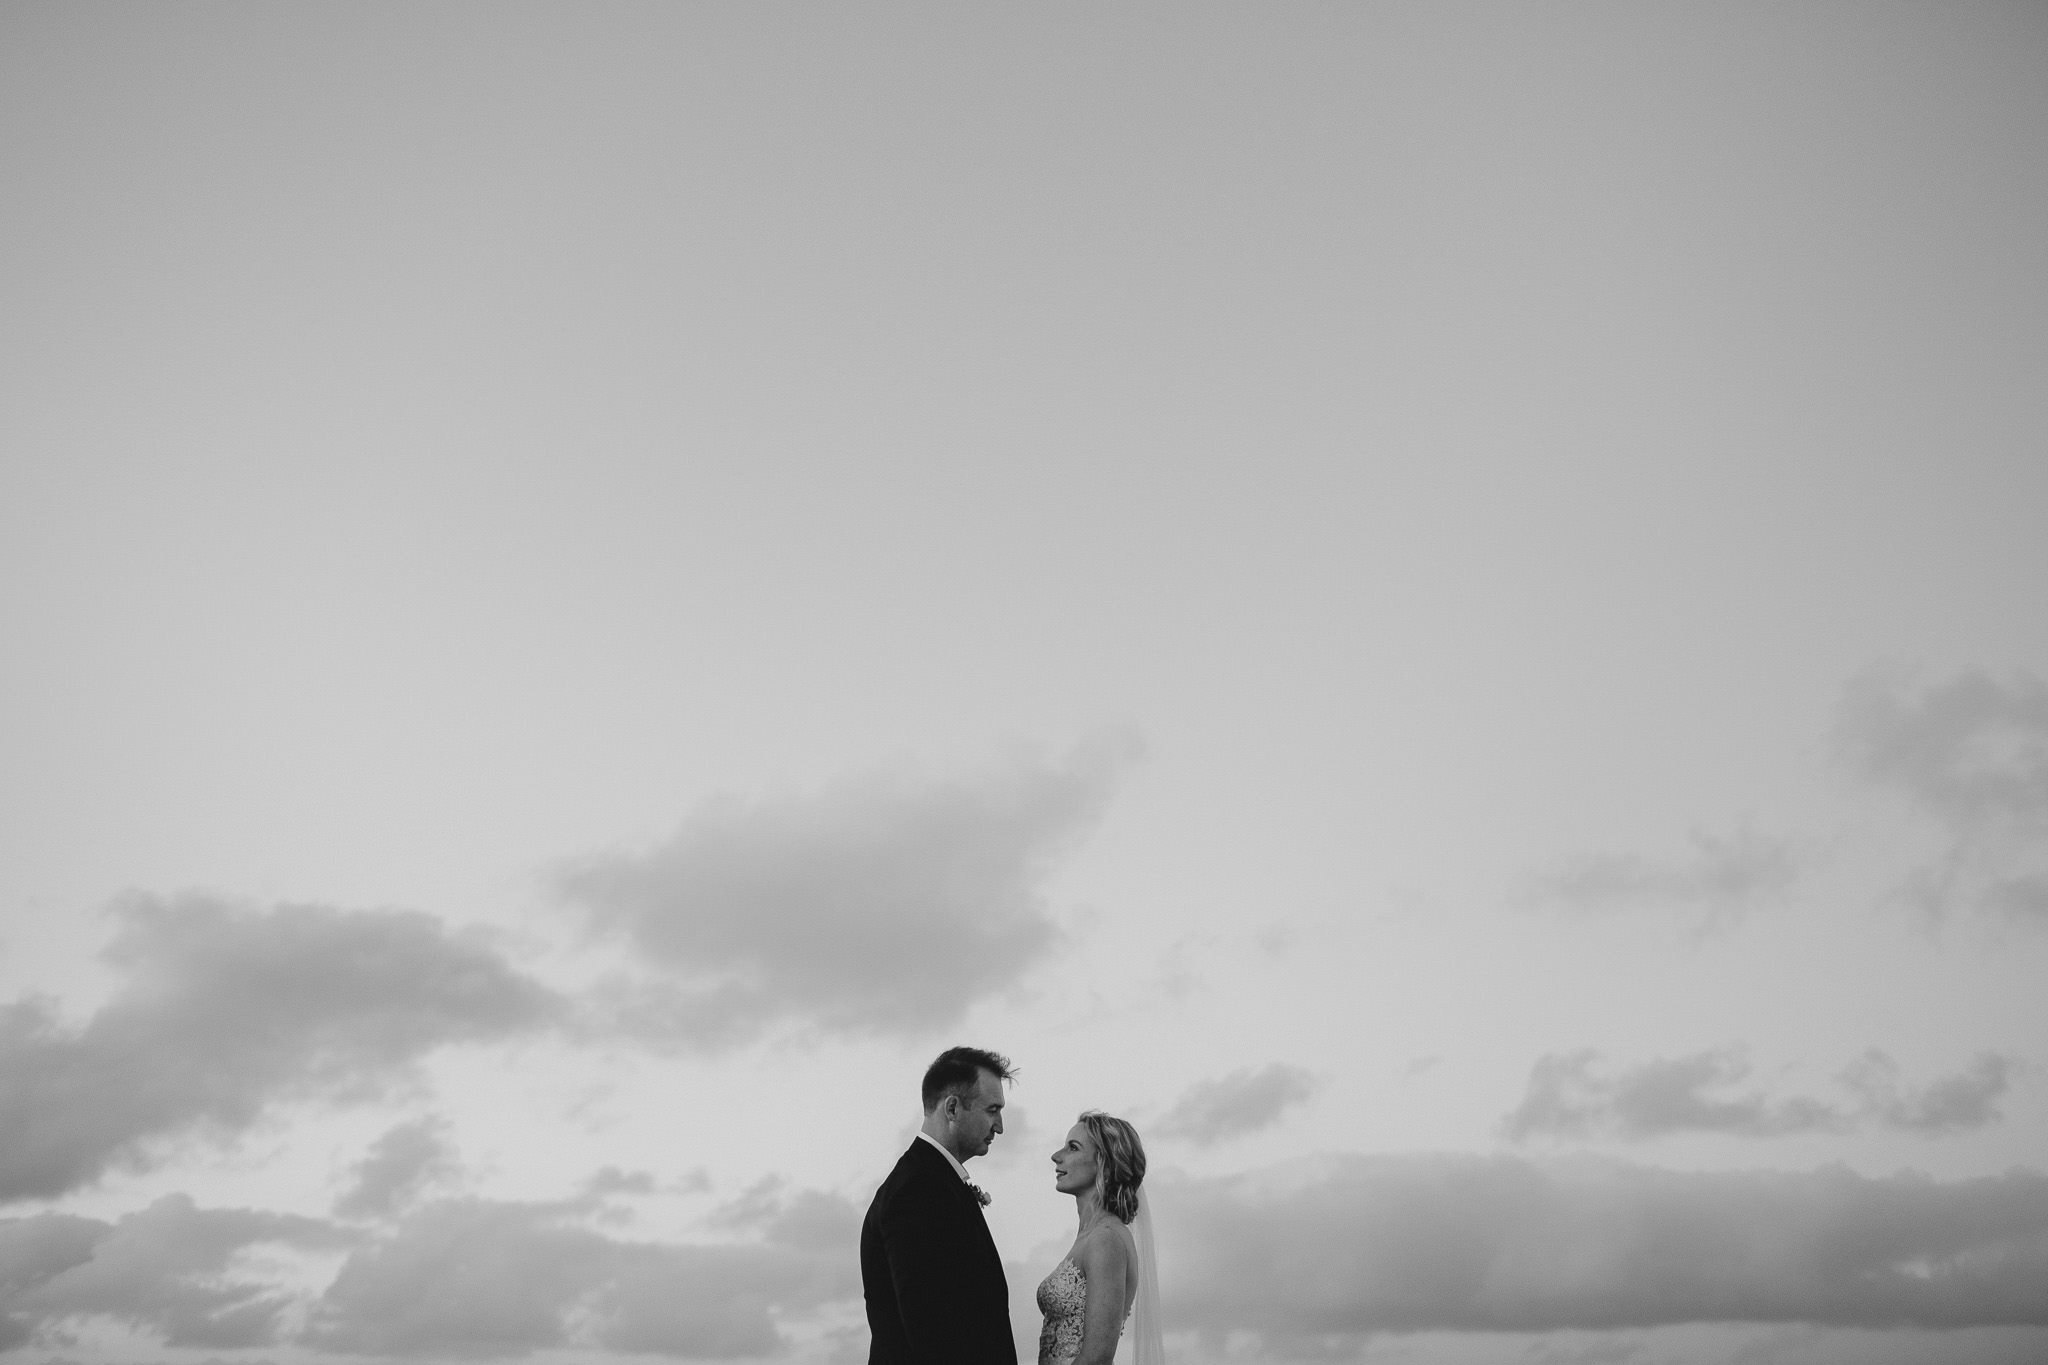 Bride and groom looking at each other with plenty of negative space and cloudy sky behind them at their autumn wedding at Bunker Bay Beach